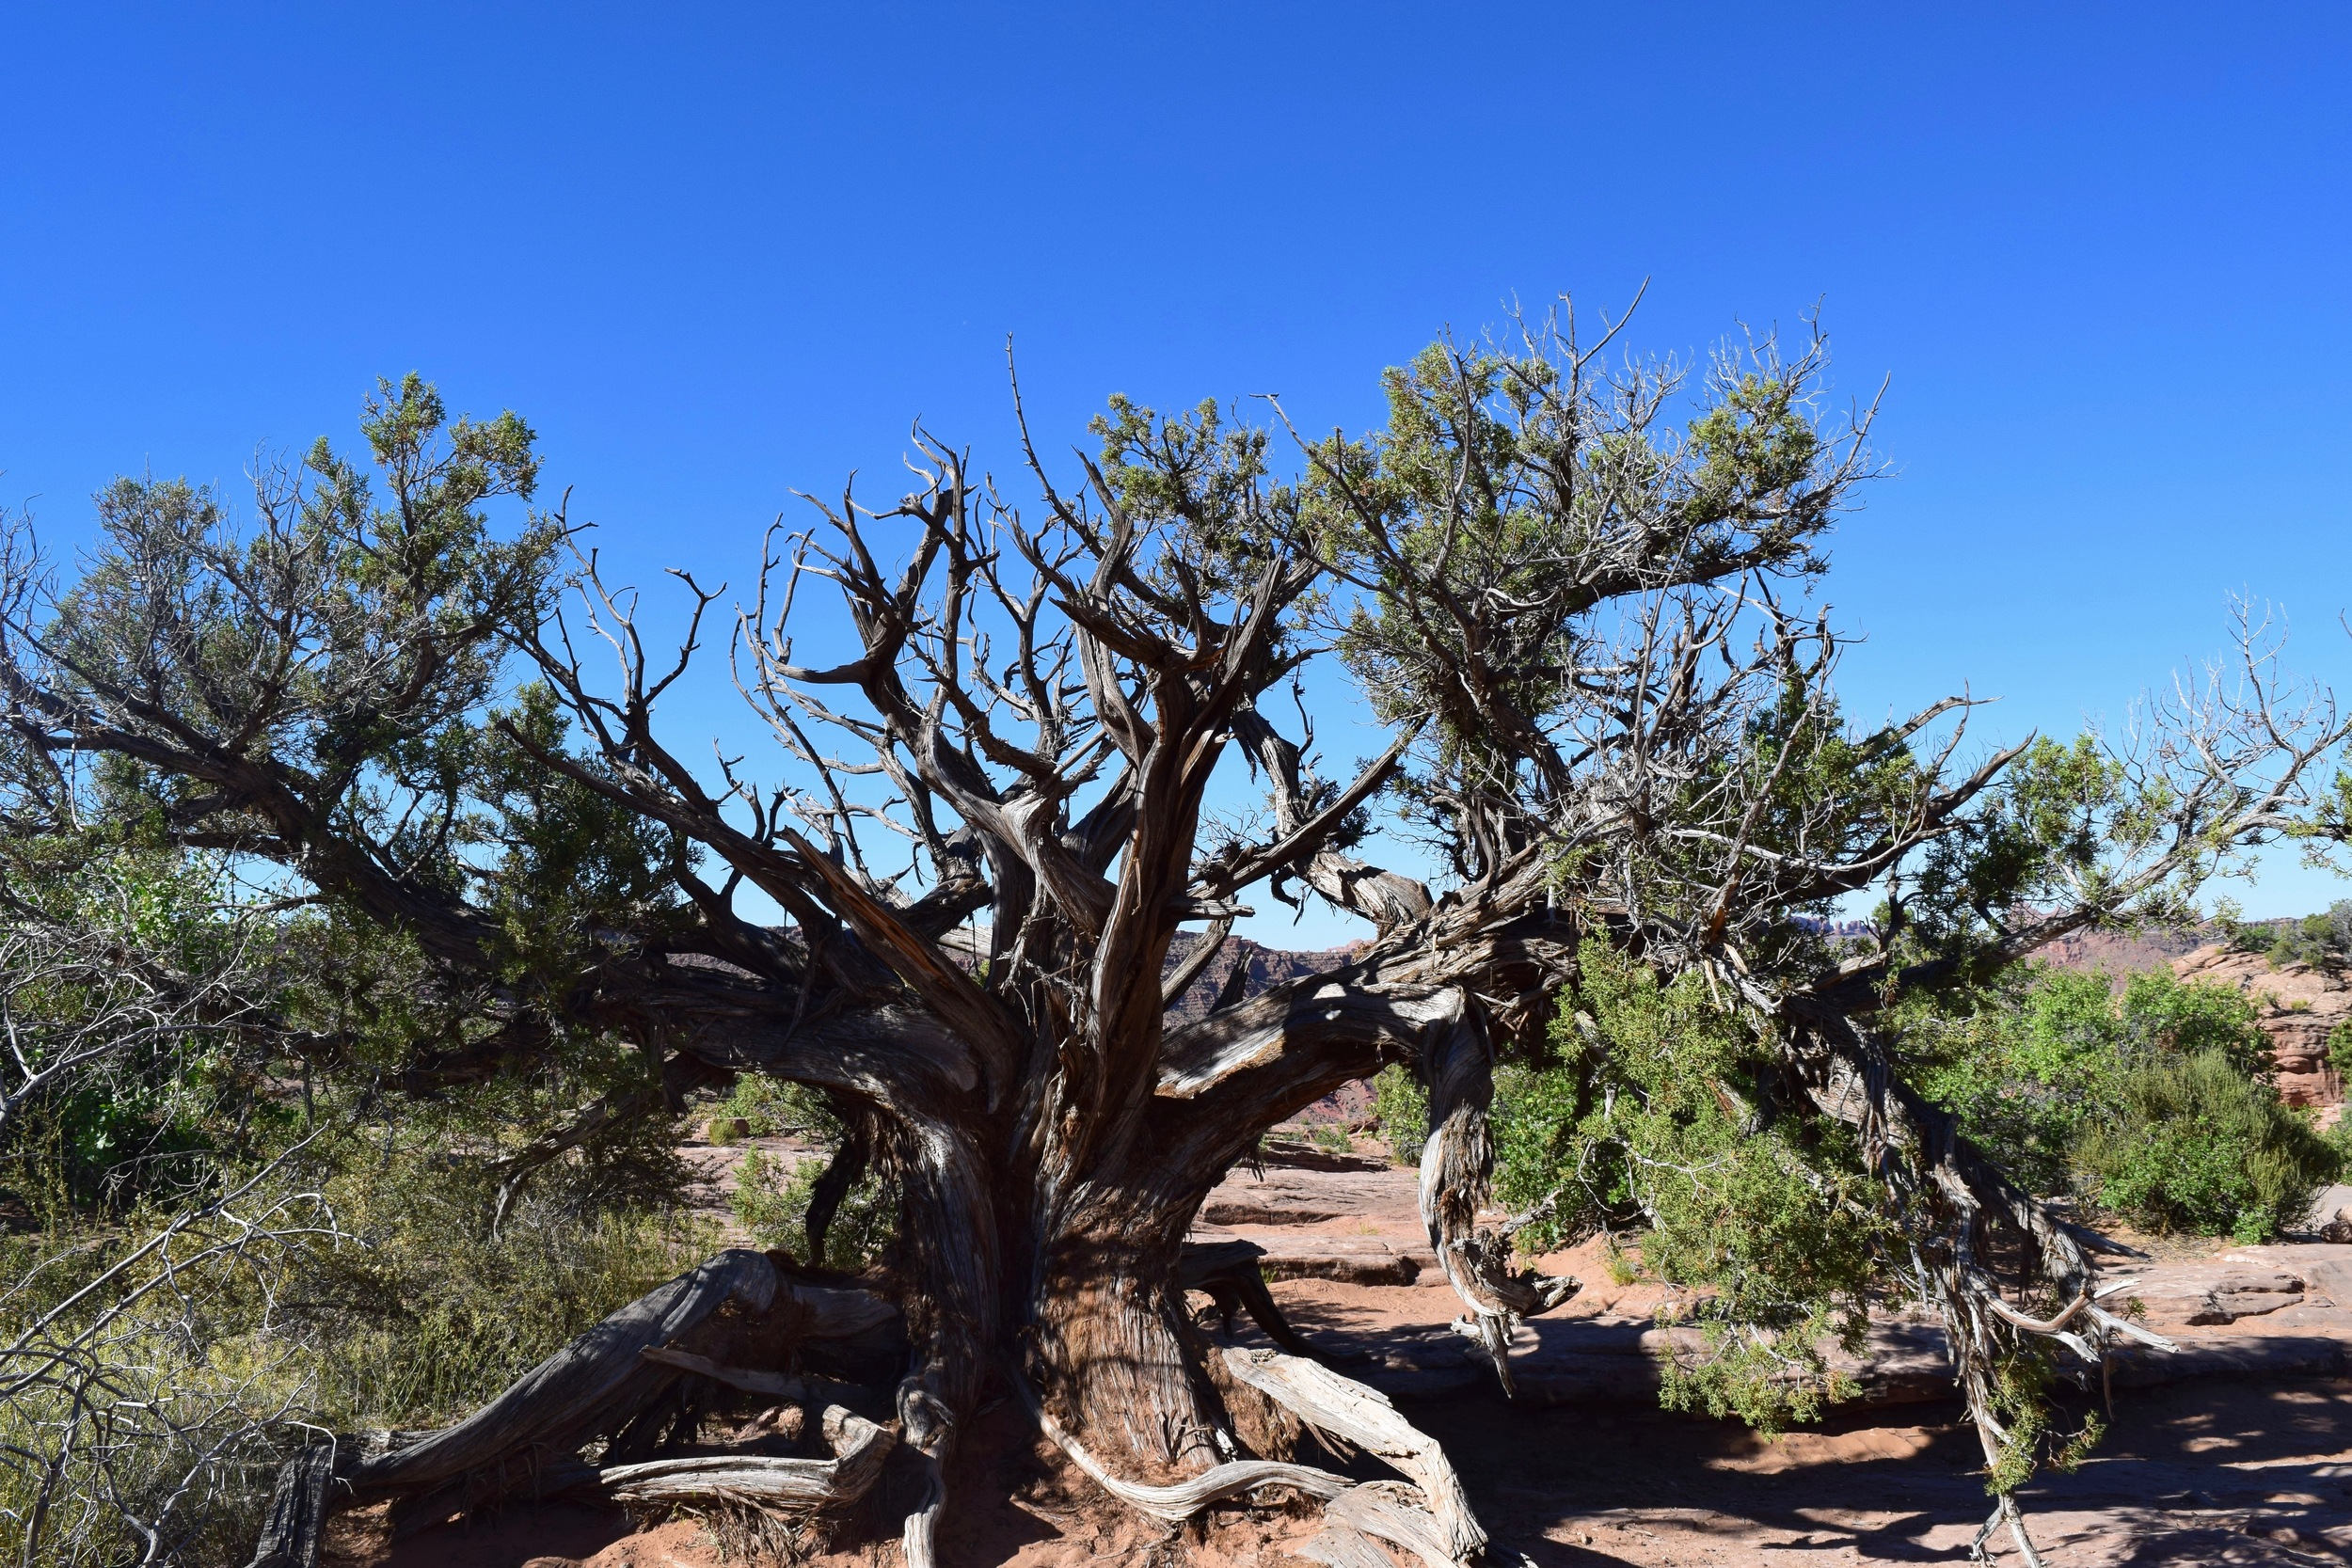 I've shared two pictures of Juniper Trees because they are so cool and show desert adaptation at its finest! In order to survive the ridiculous climate, they isolate their growth each year to a few branches, letting the others die.